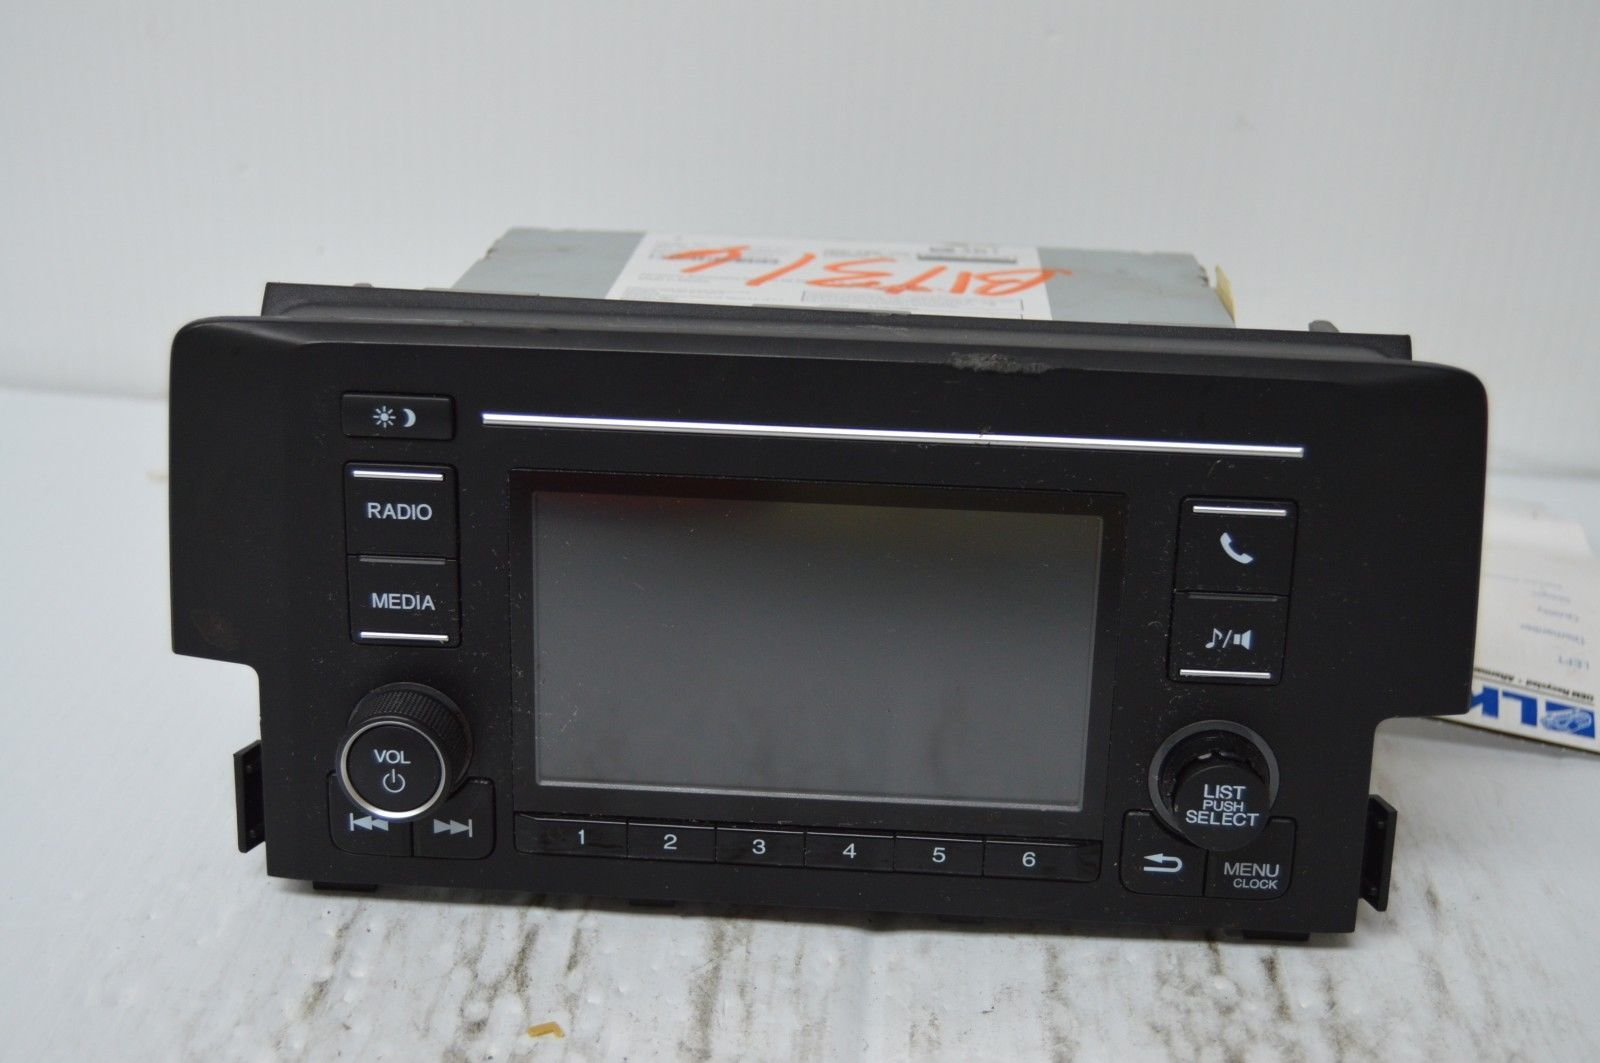 2016 honda civic radio bluetooth cd player 39100 tba a11 parts only v53 002 other. Black Bedroom Furniture Sets. Home Design Ideas